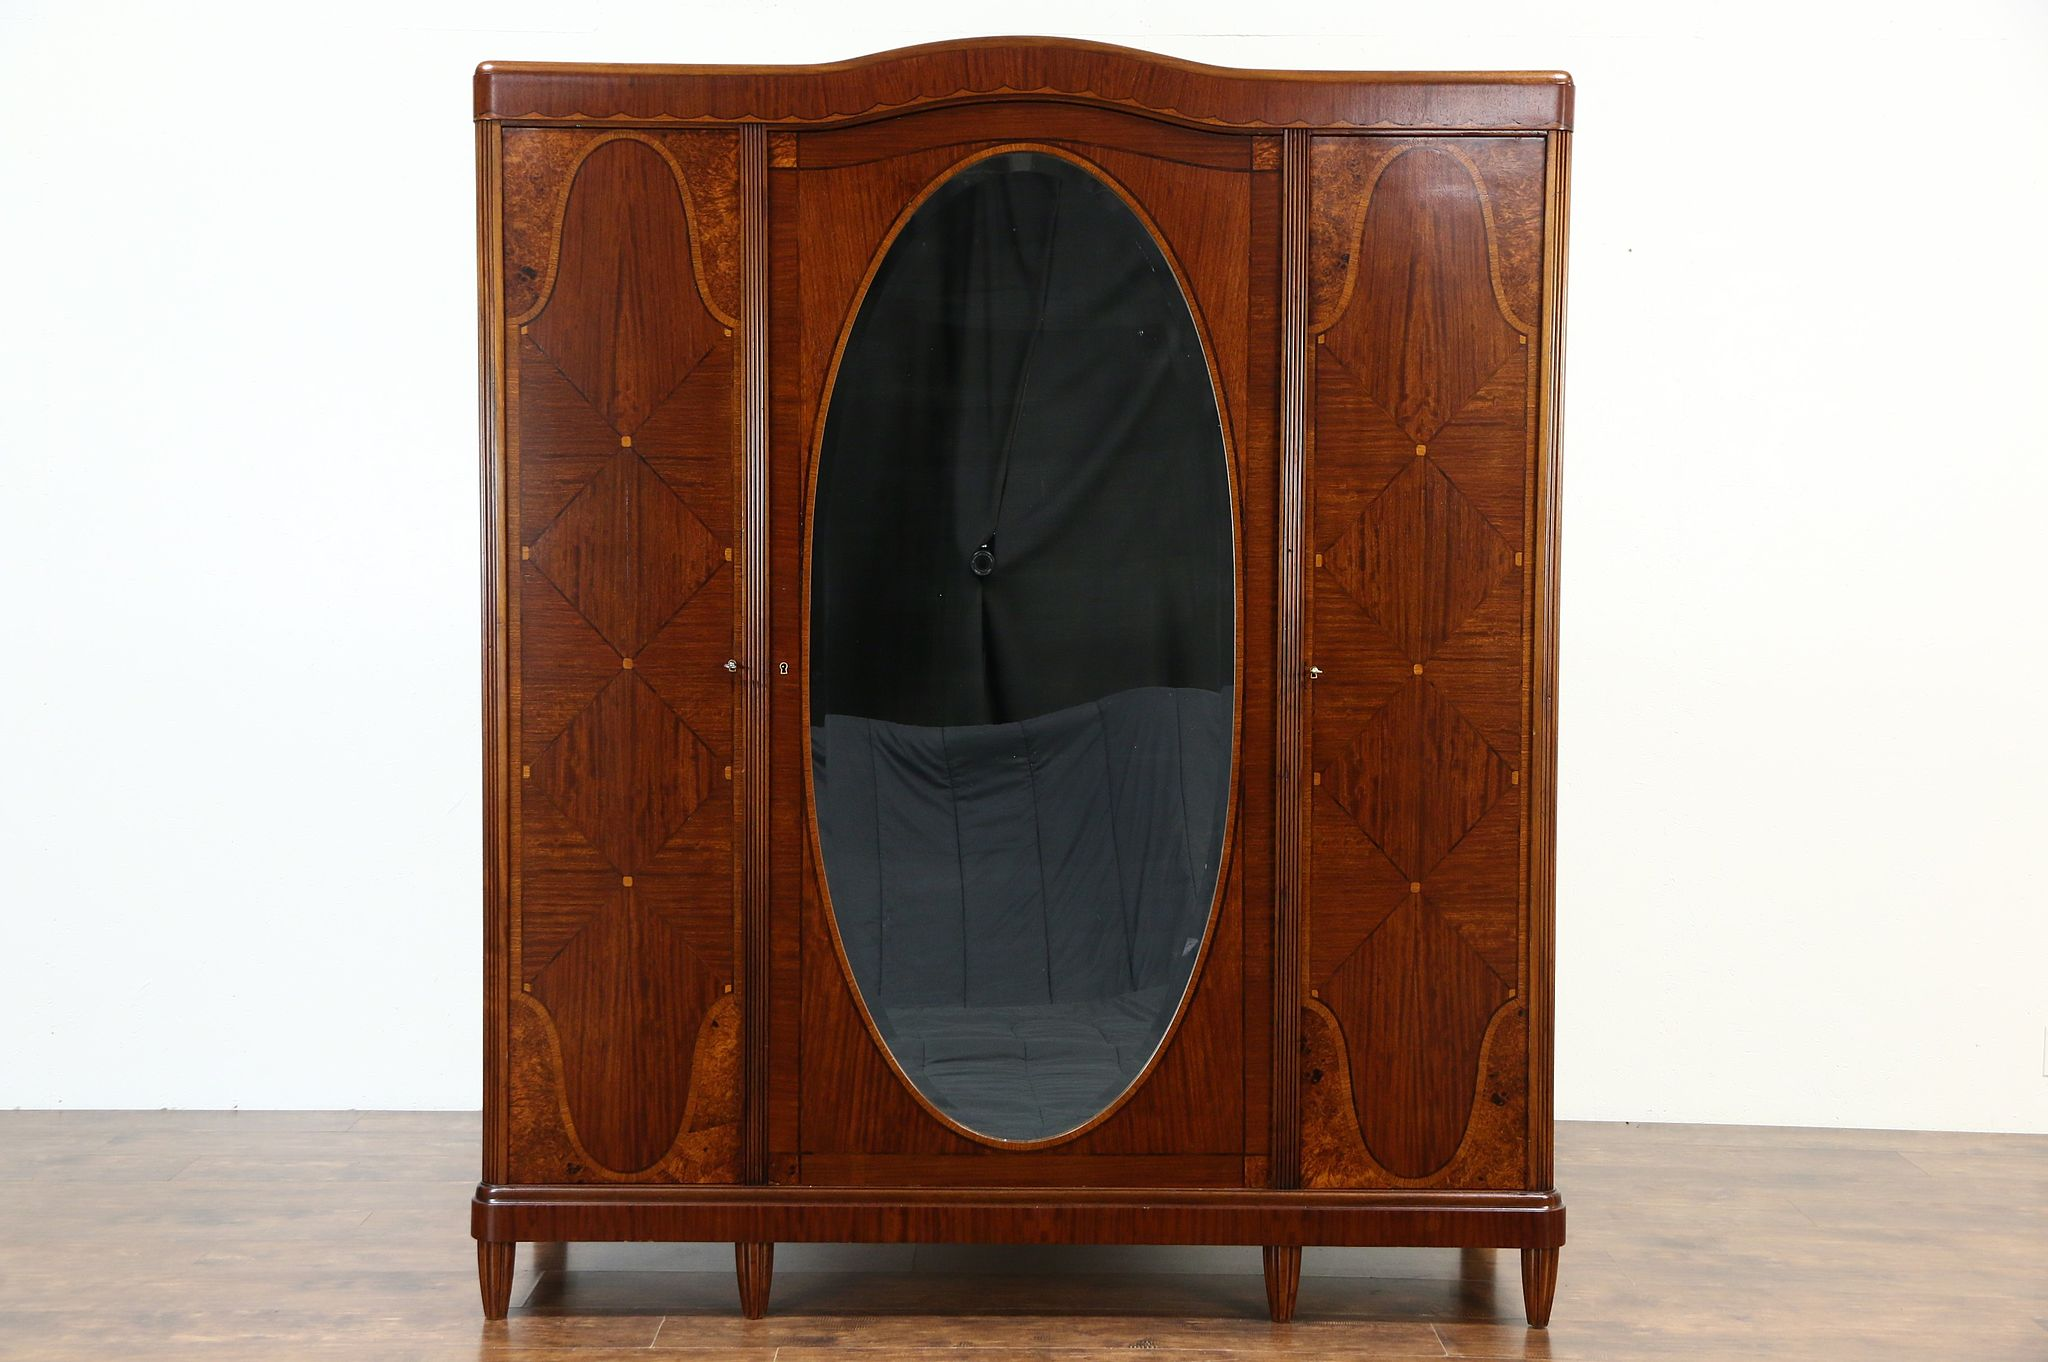 sold armoire wardrobe or closet 1925 english art deco rosewood marquetry harp gallery. Black Bedroom Furniture Sets. Home Design Ideas